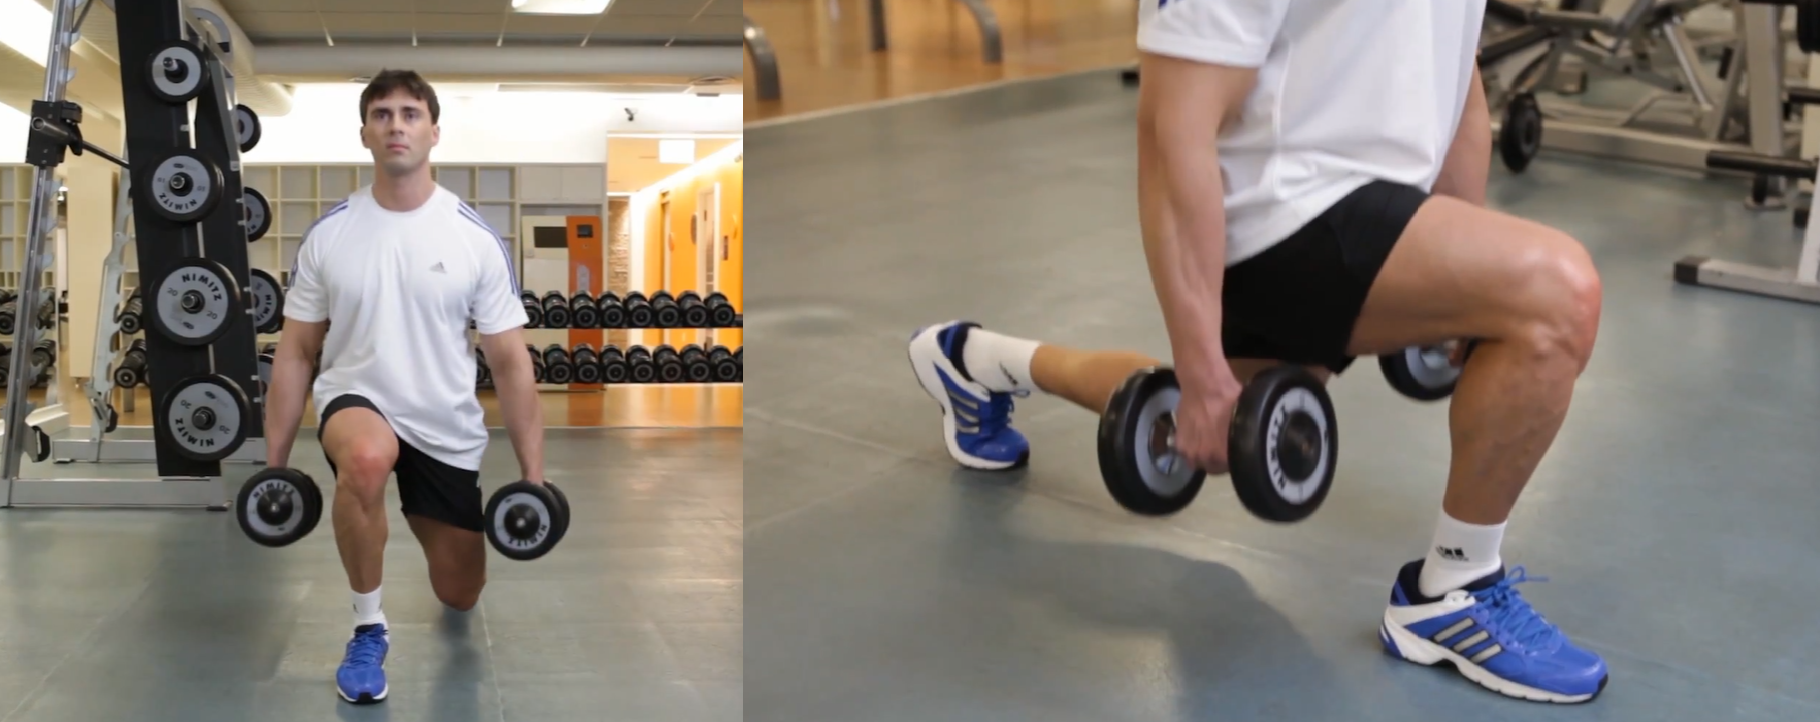 Lunges With Dumbbells - Step 3